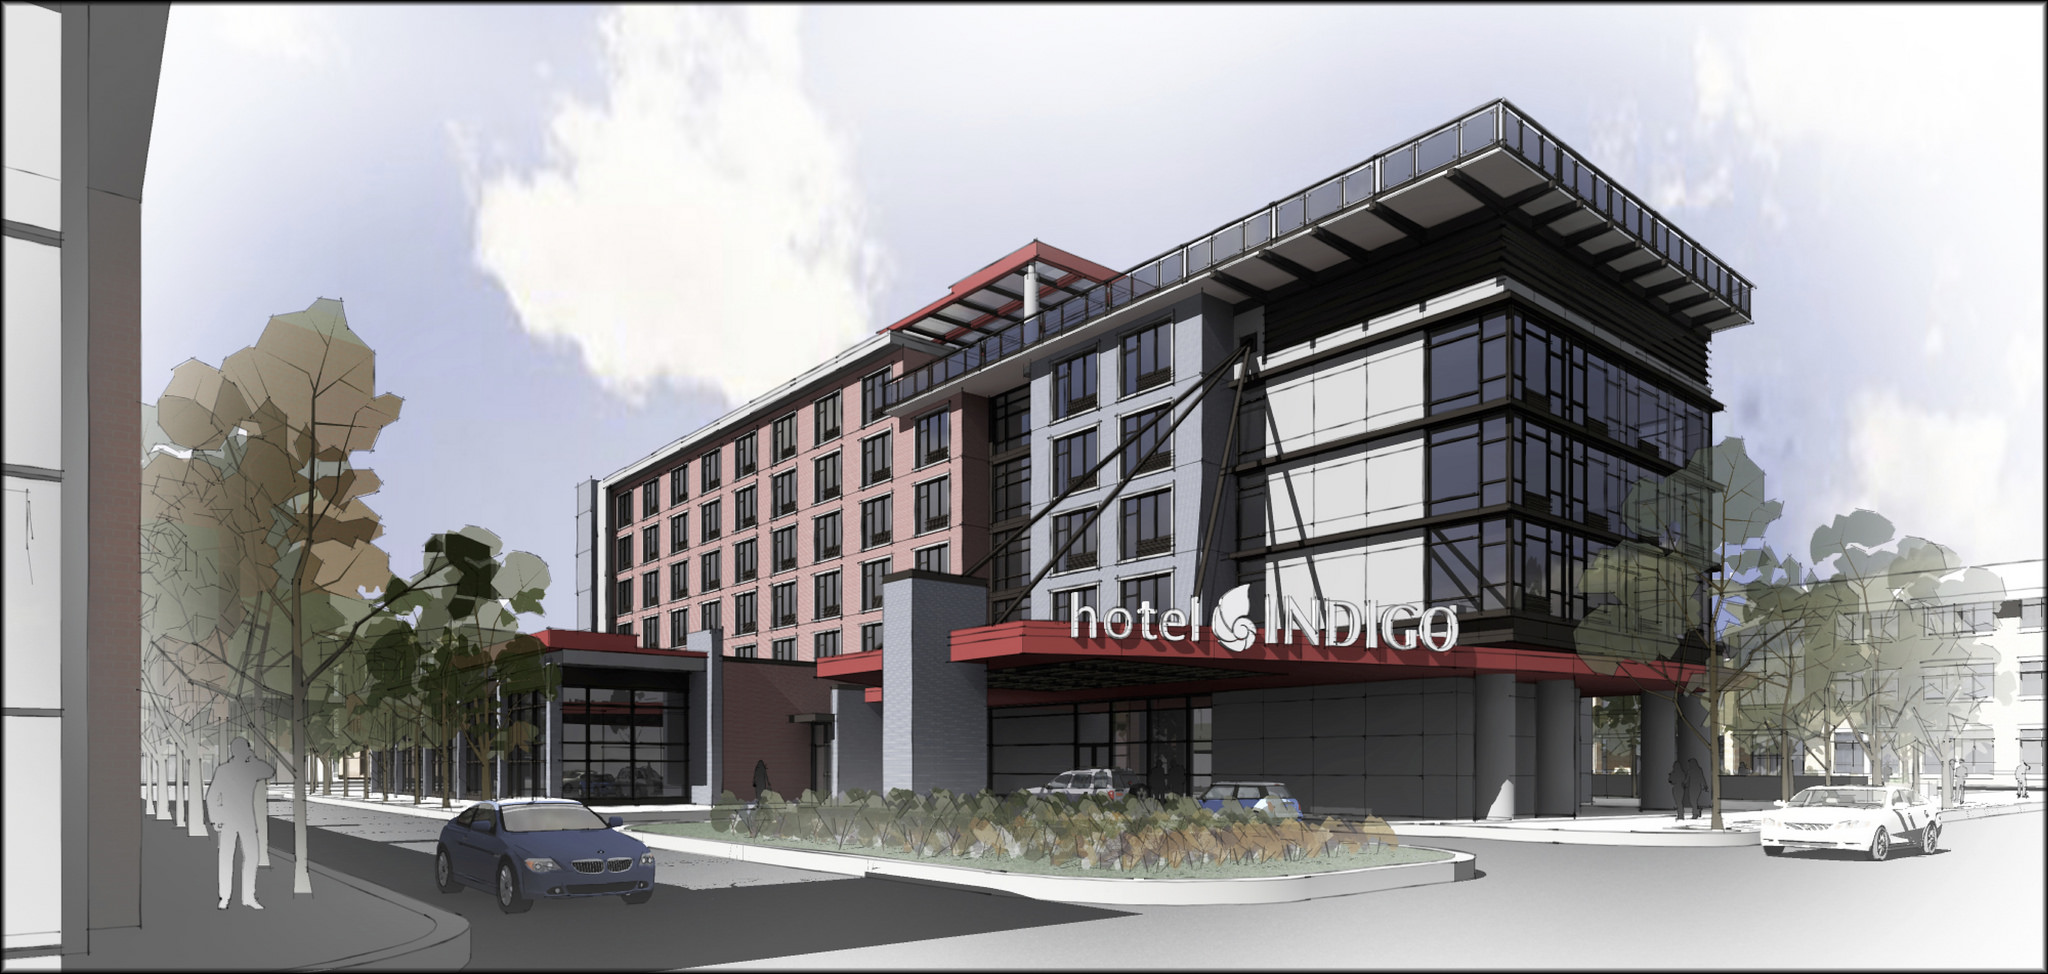 Ihg To Open 120 Room Hotel Indigo At Celebration Pointe In Gainesville Fla